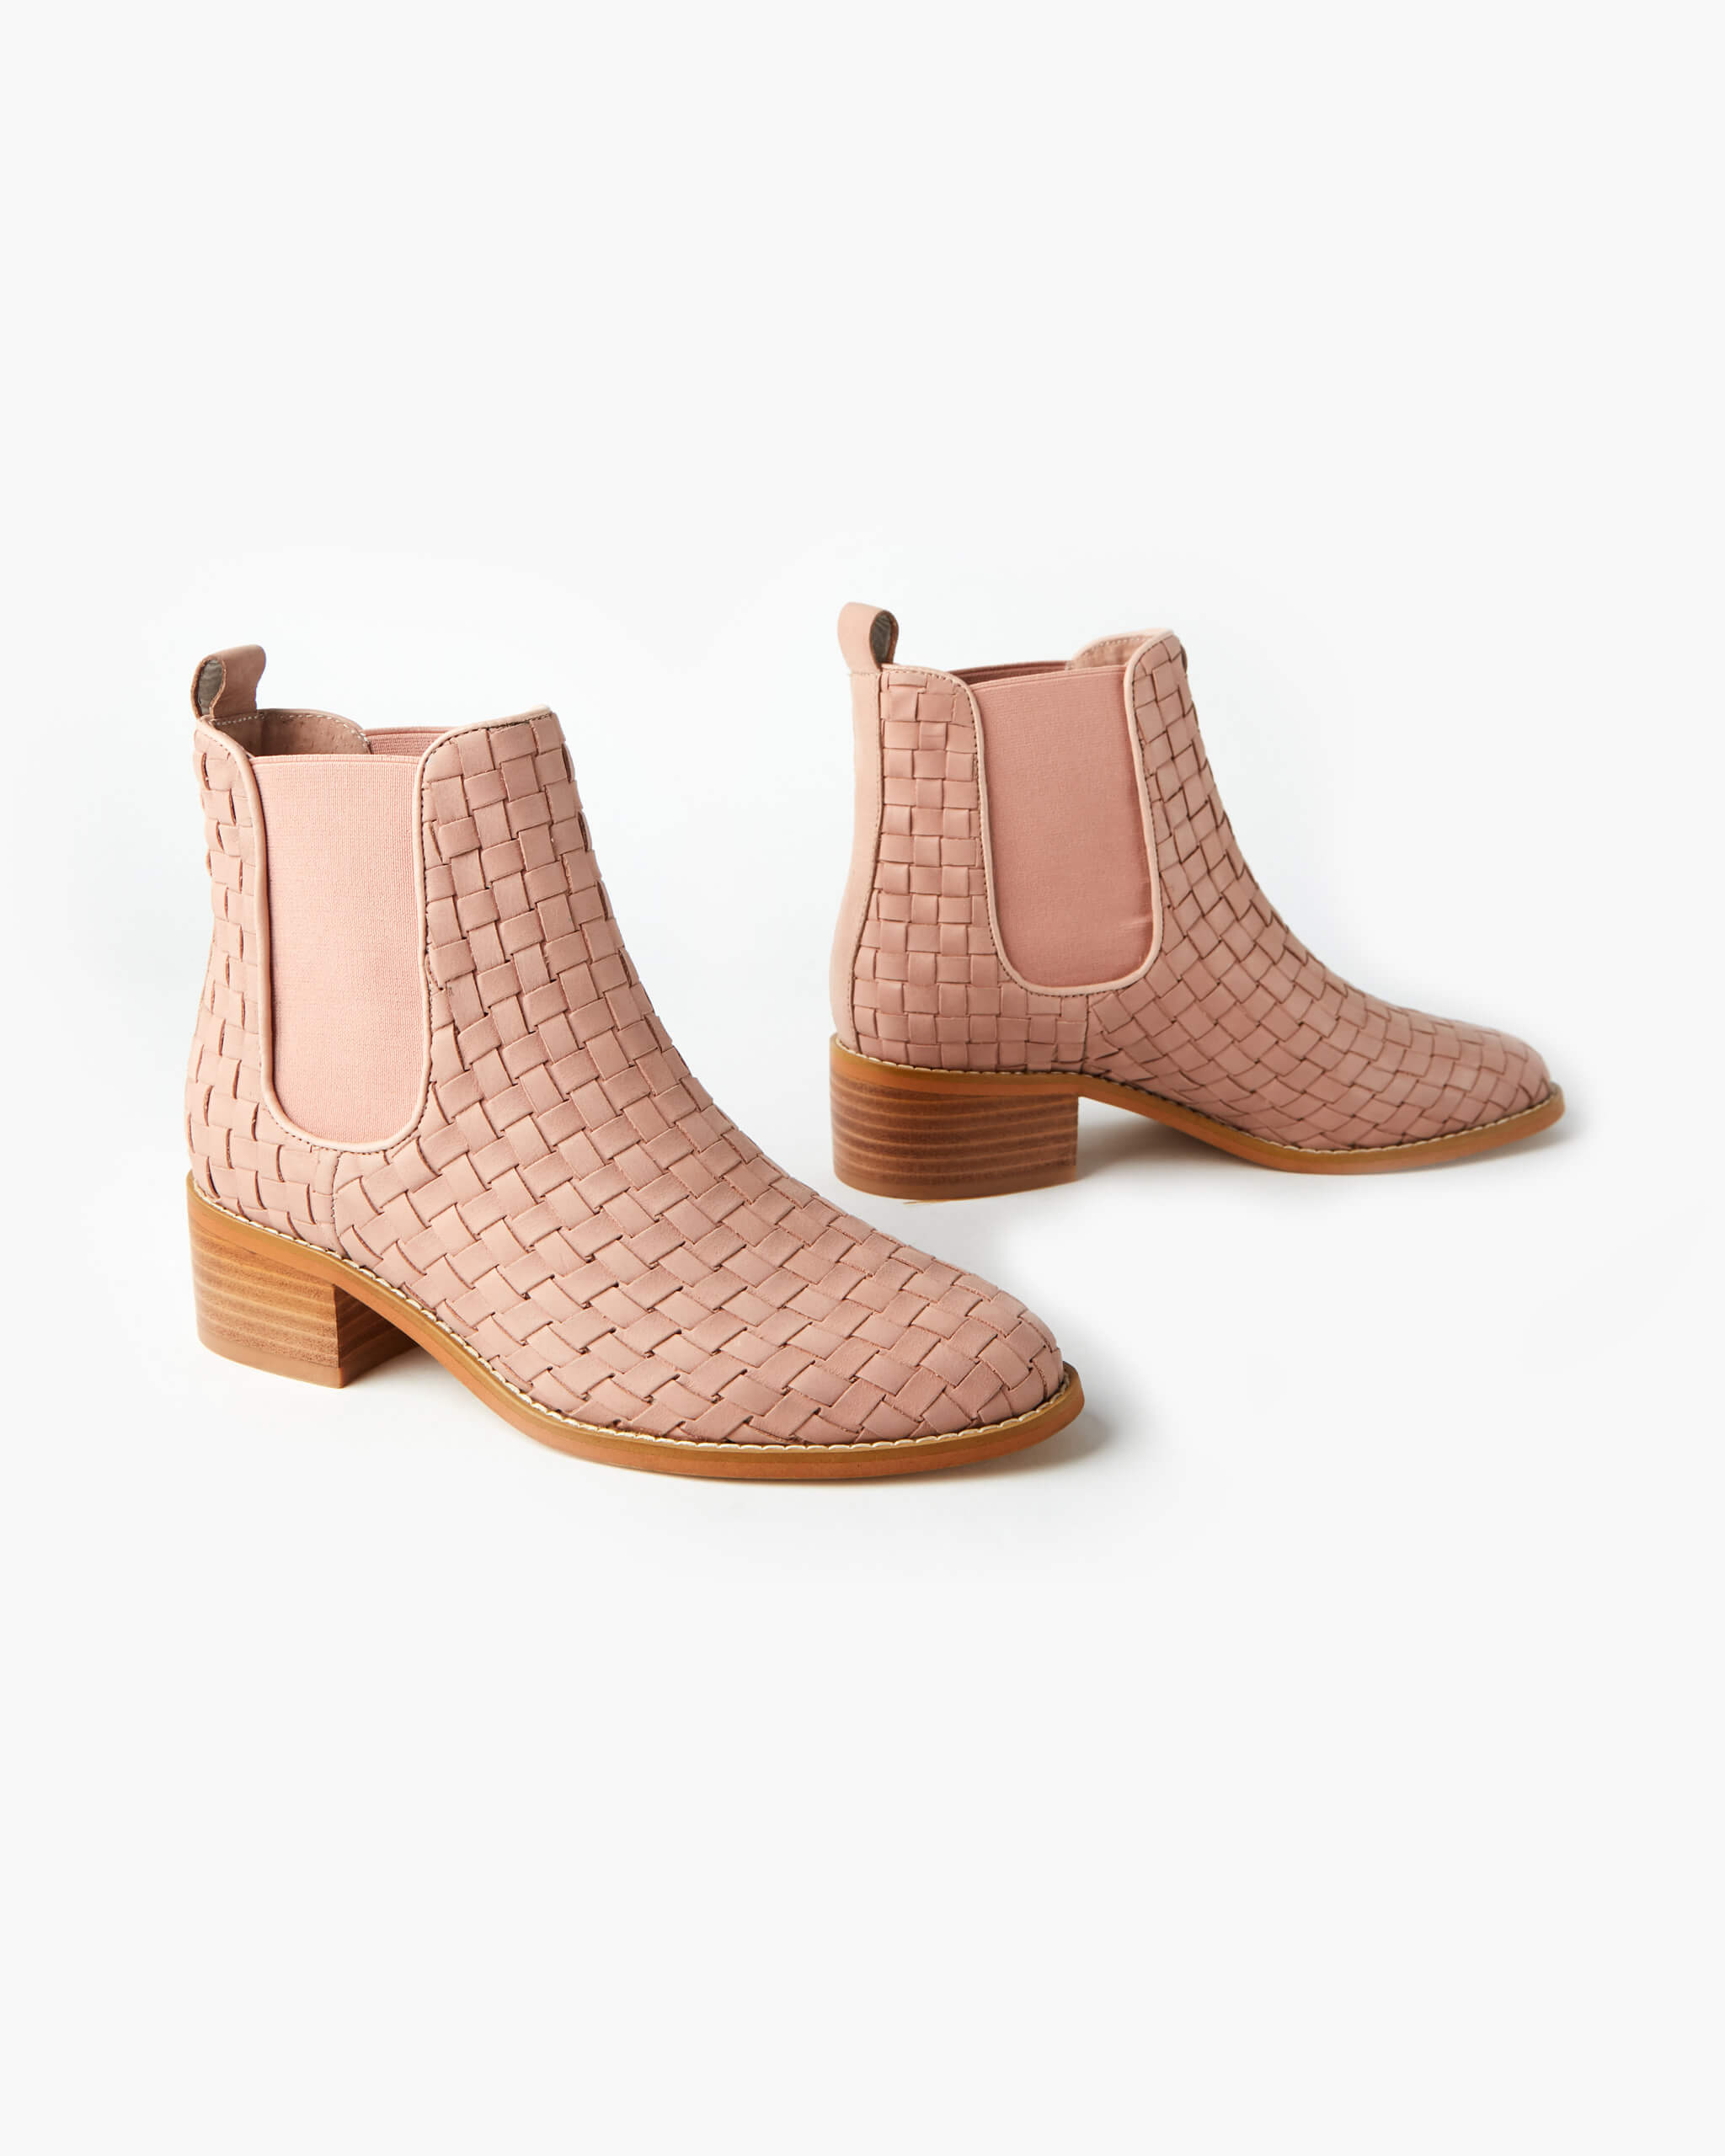 Grace Leather Weave Ankle Boot - Blush